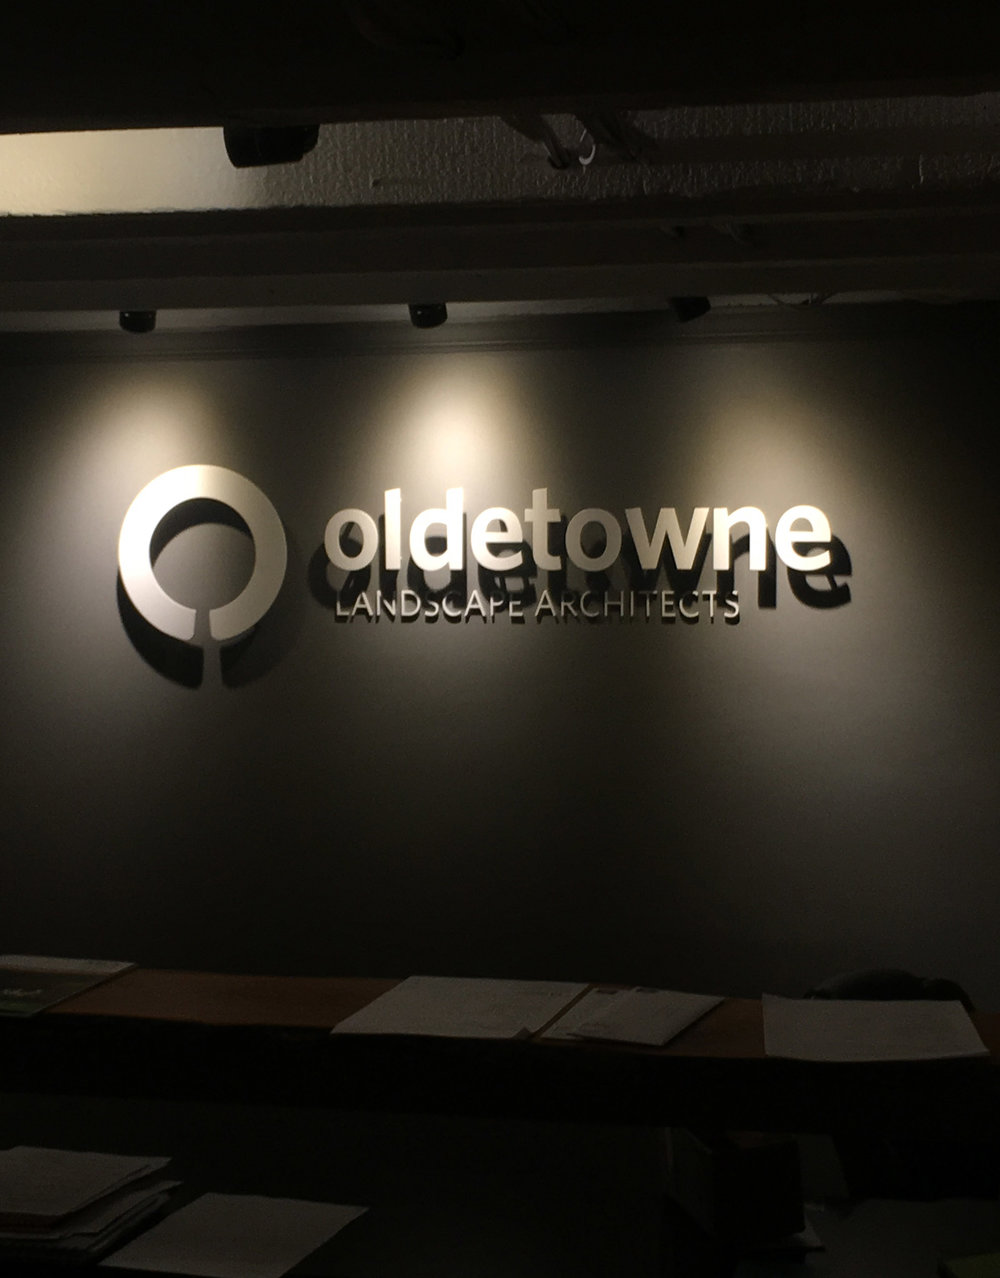 Custom metal 3D sign for Oldetowne Lanscape Architects